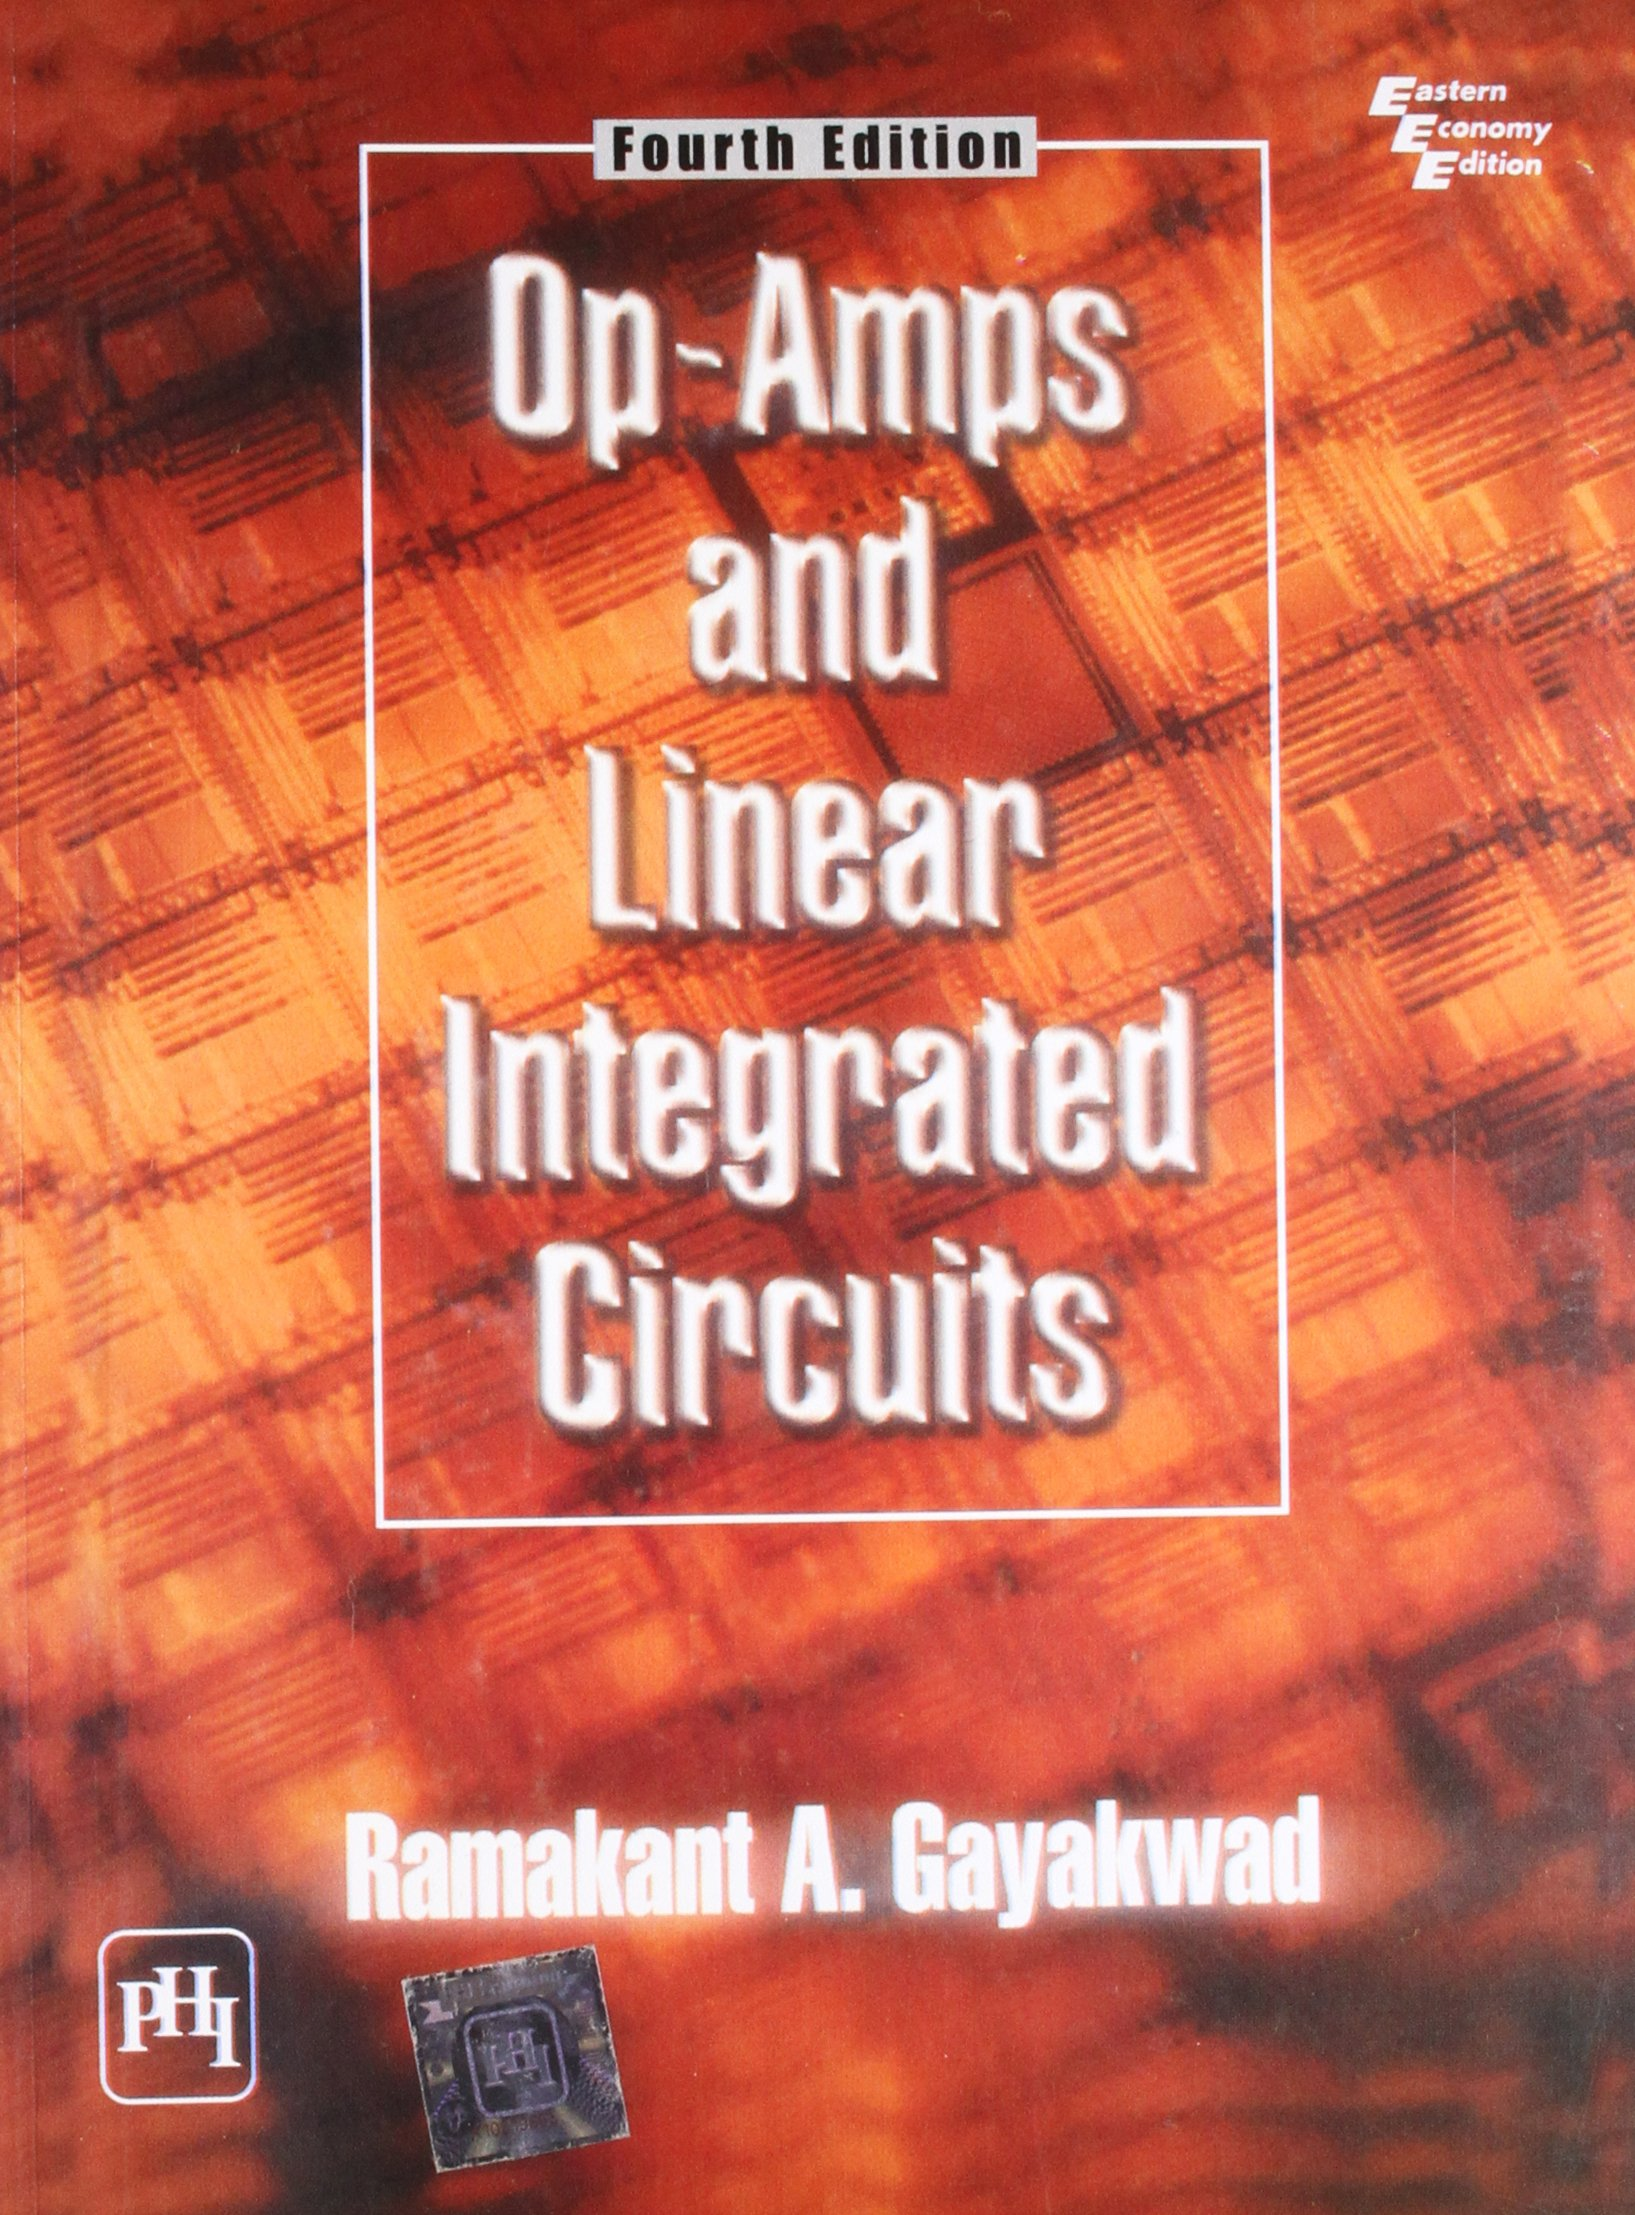 Op amp linear integrated circuits pdf download by projaqmocomp issuu.